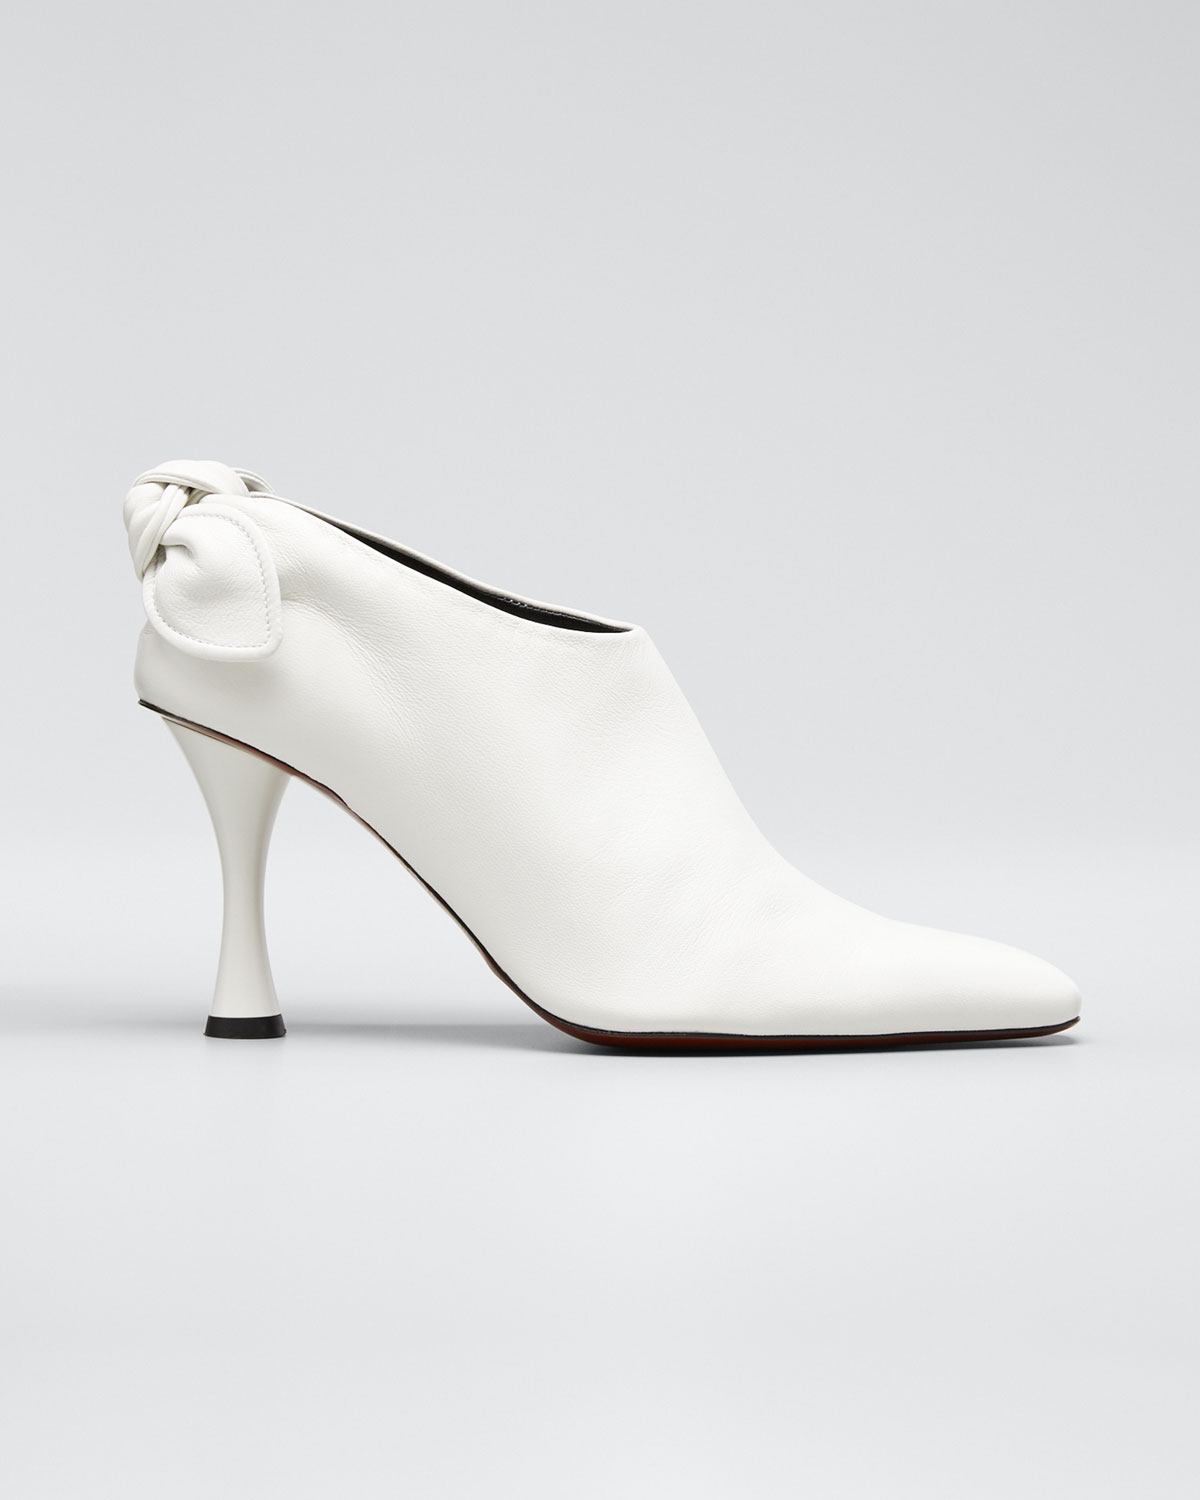 Proenza Schouler Boots VASE KNOTTED ANKLE BOOTIES